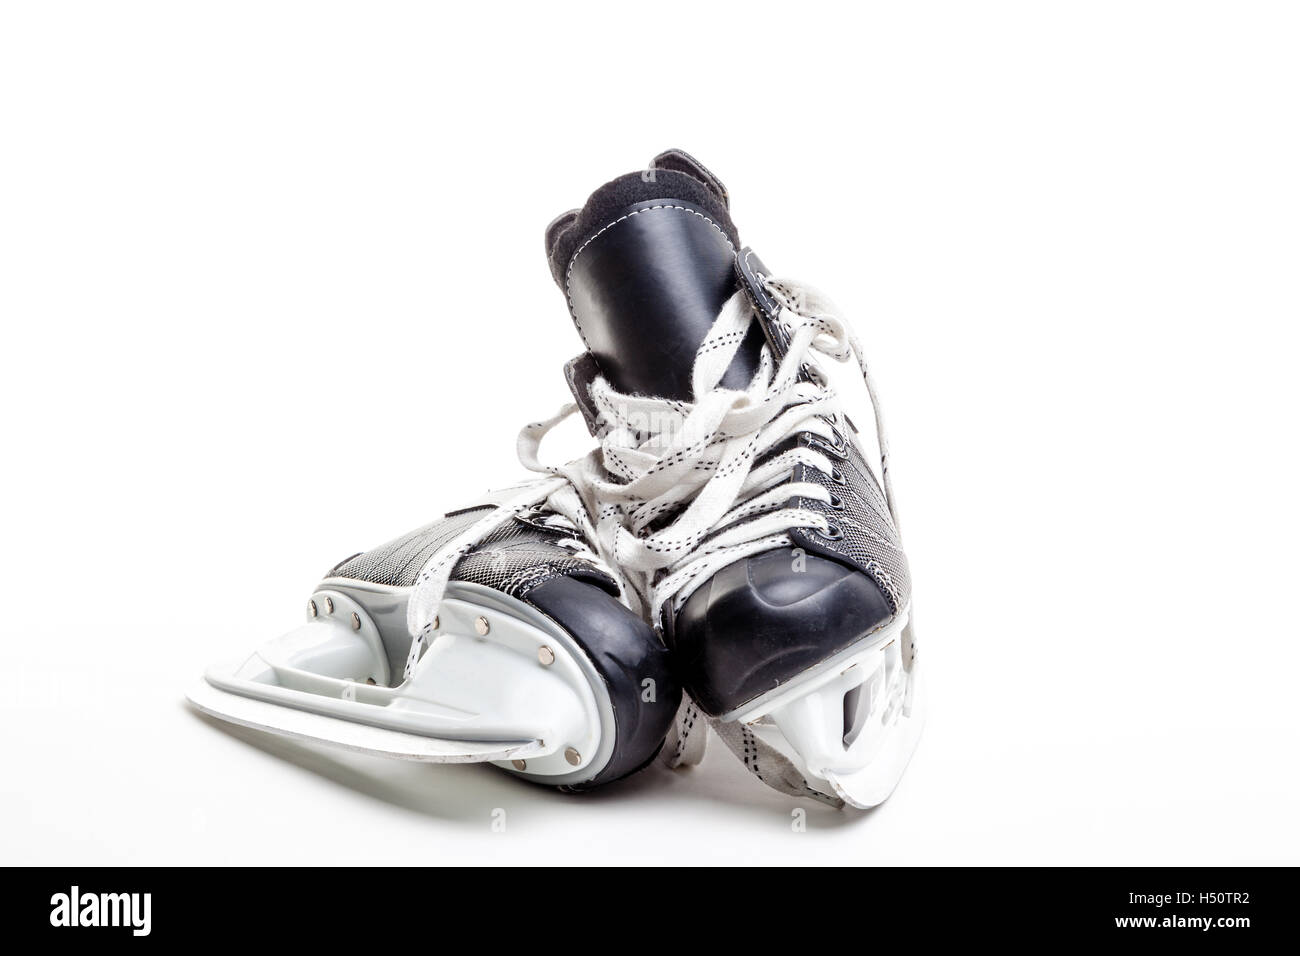 A pair of ice hockey skates isolated on white background with copy space. - Stock Image